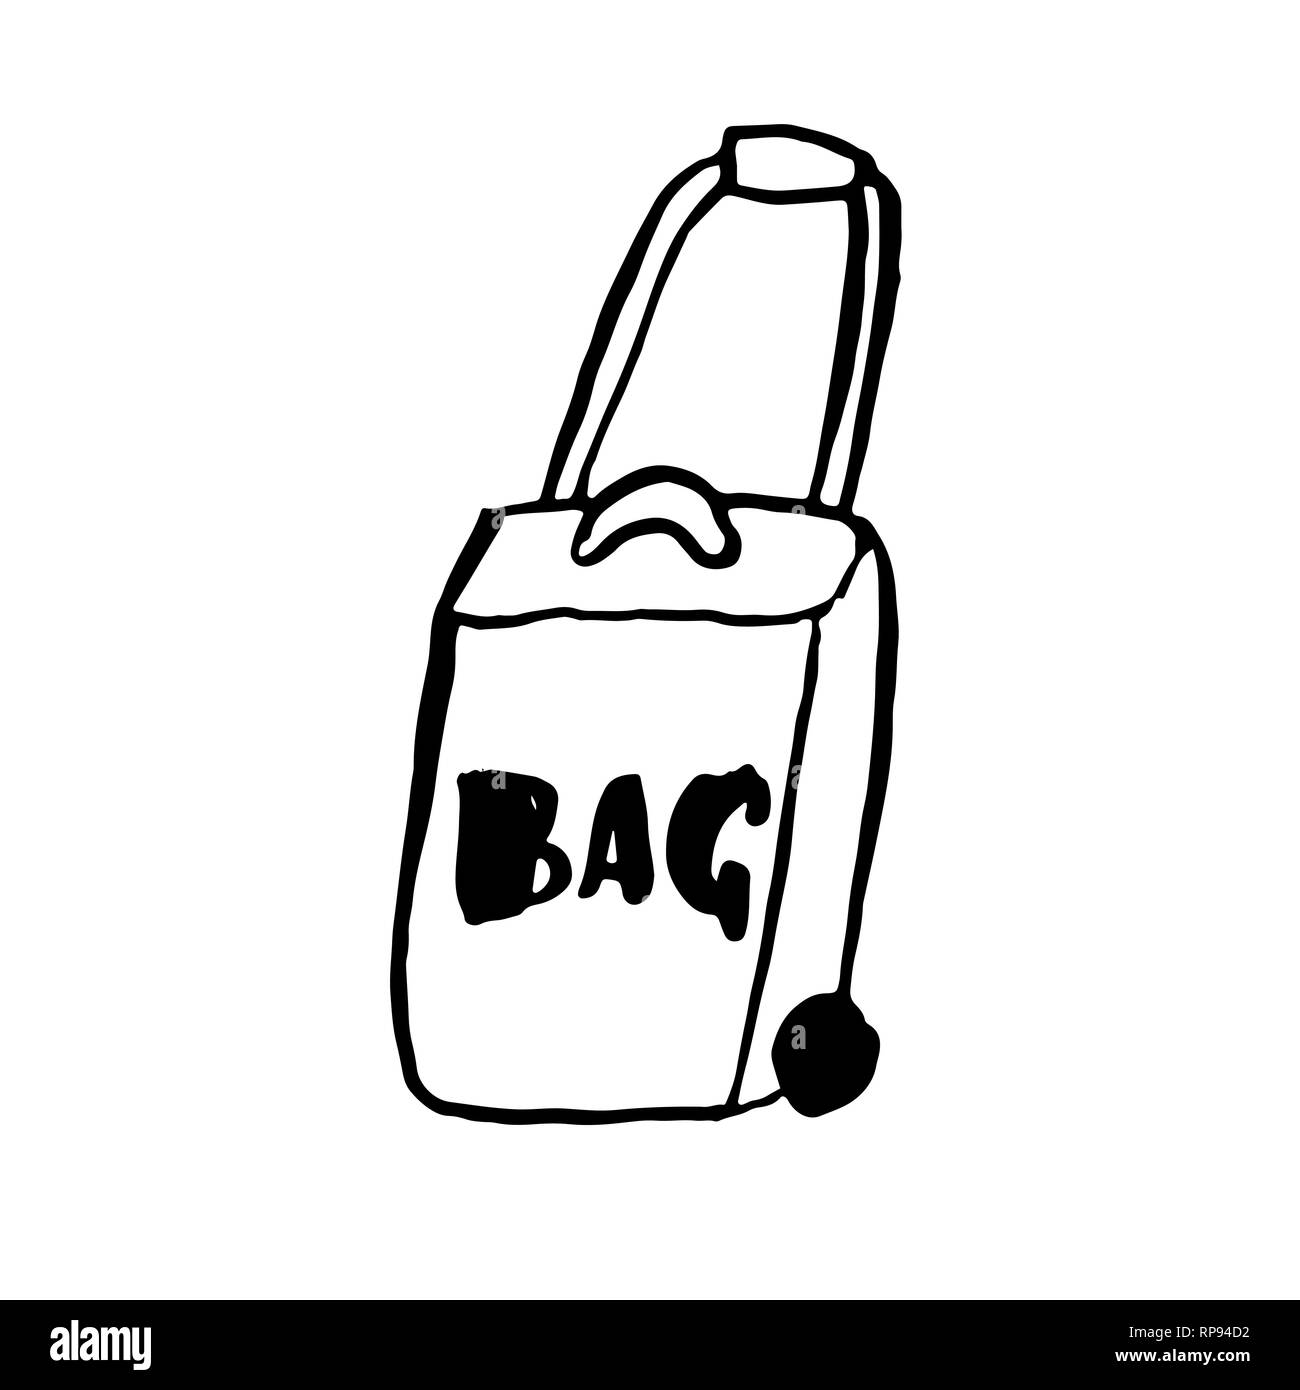 Travel Bag Grunge Icon Vector Hand Drawn Illustration Stock Vector Image Art Alamy